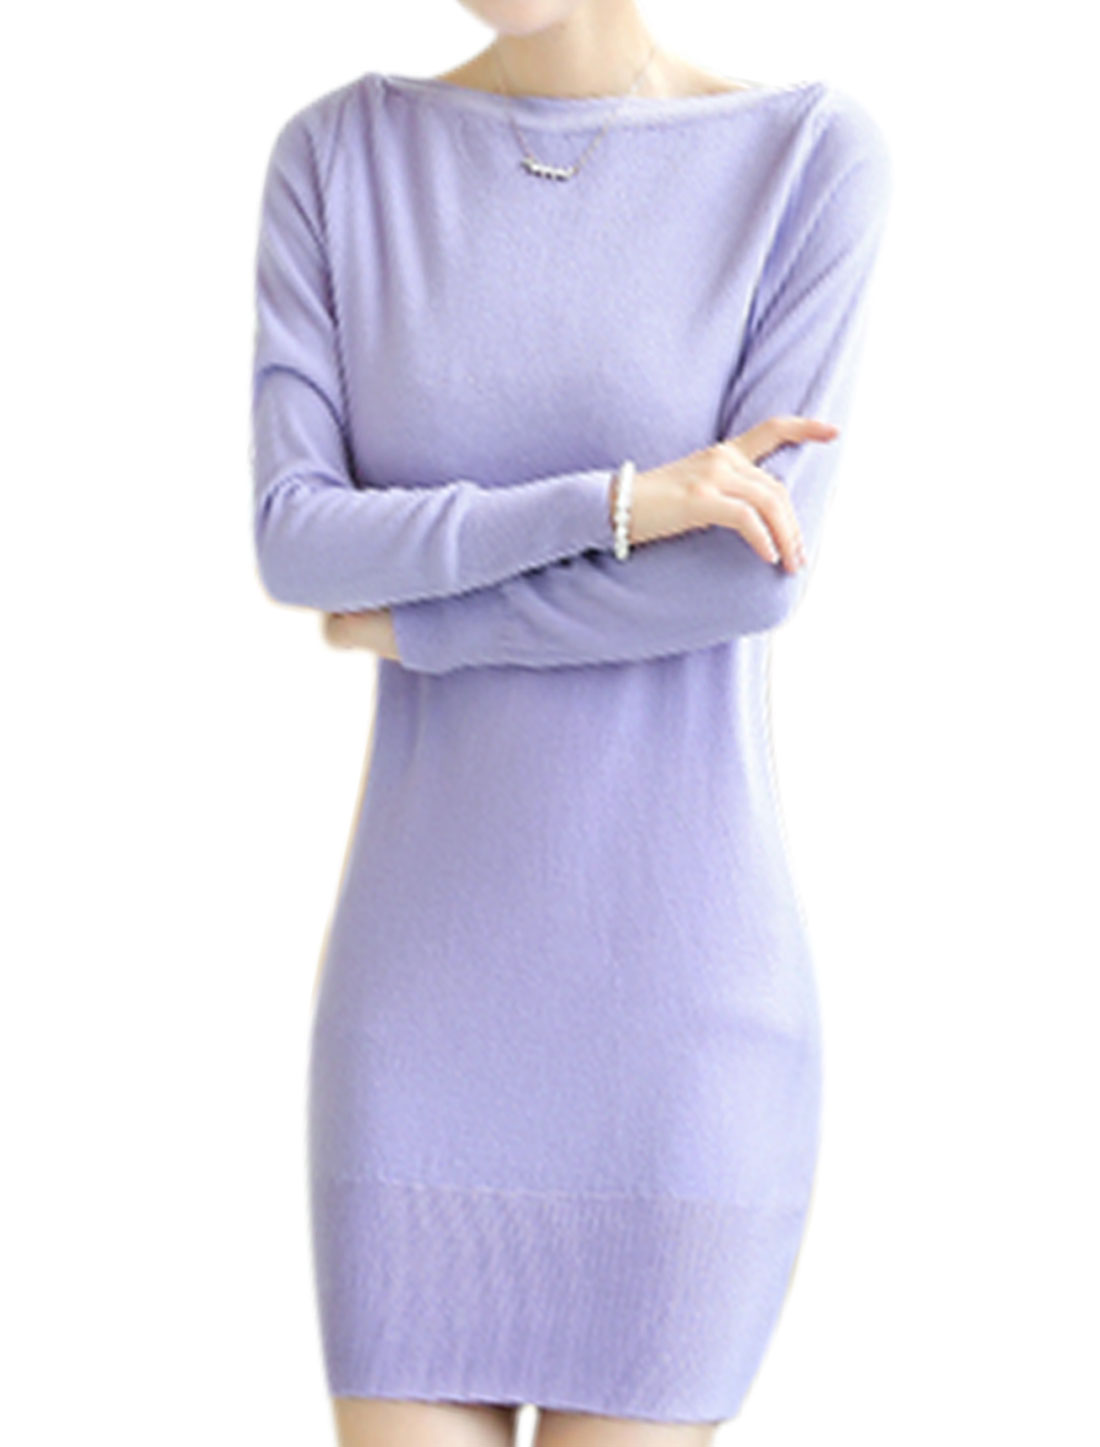 Chic Casual Design Long Sleeves Light Purple Tunic Knit Top for Ladies S